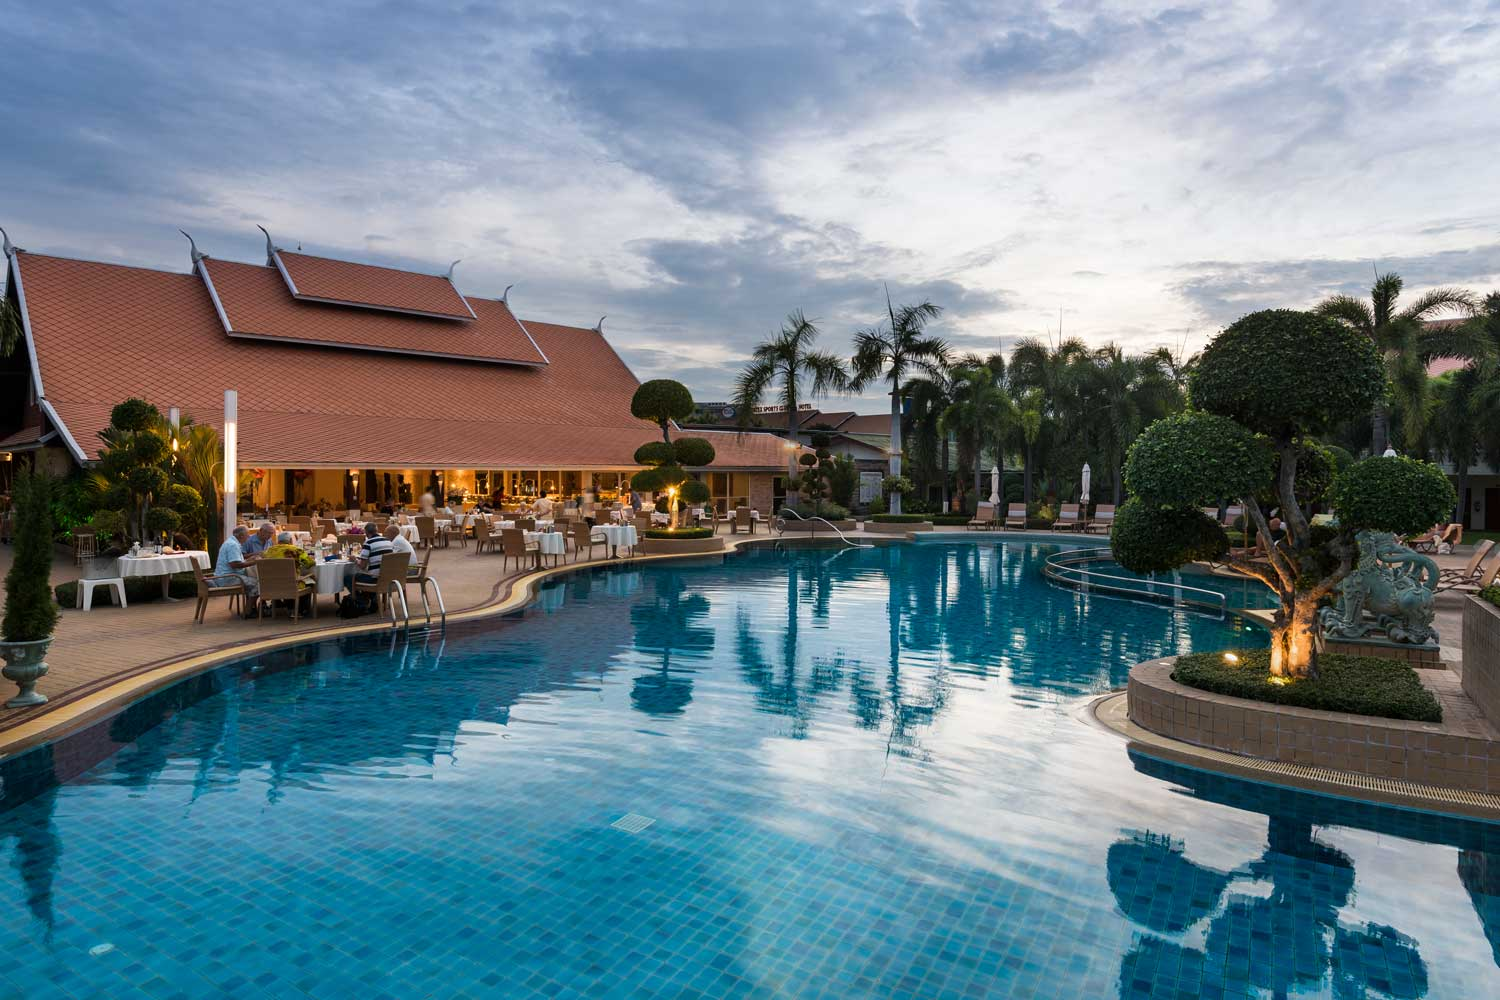 Thai Garden Resort Pattaya Thailand. Our lagoon pool and restaurant